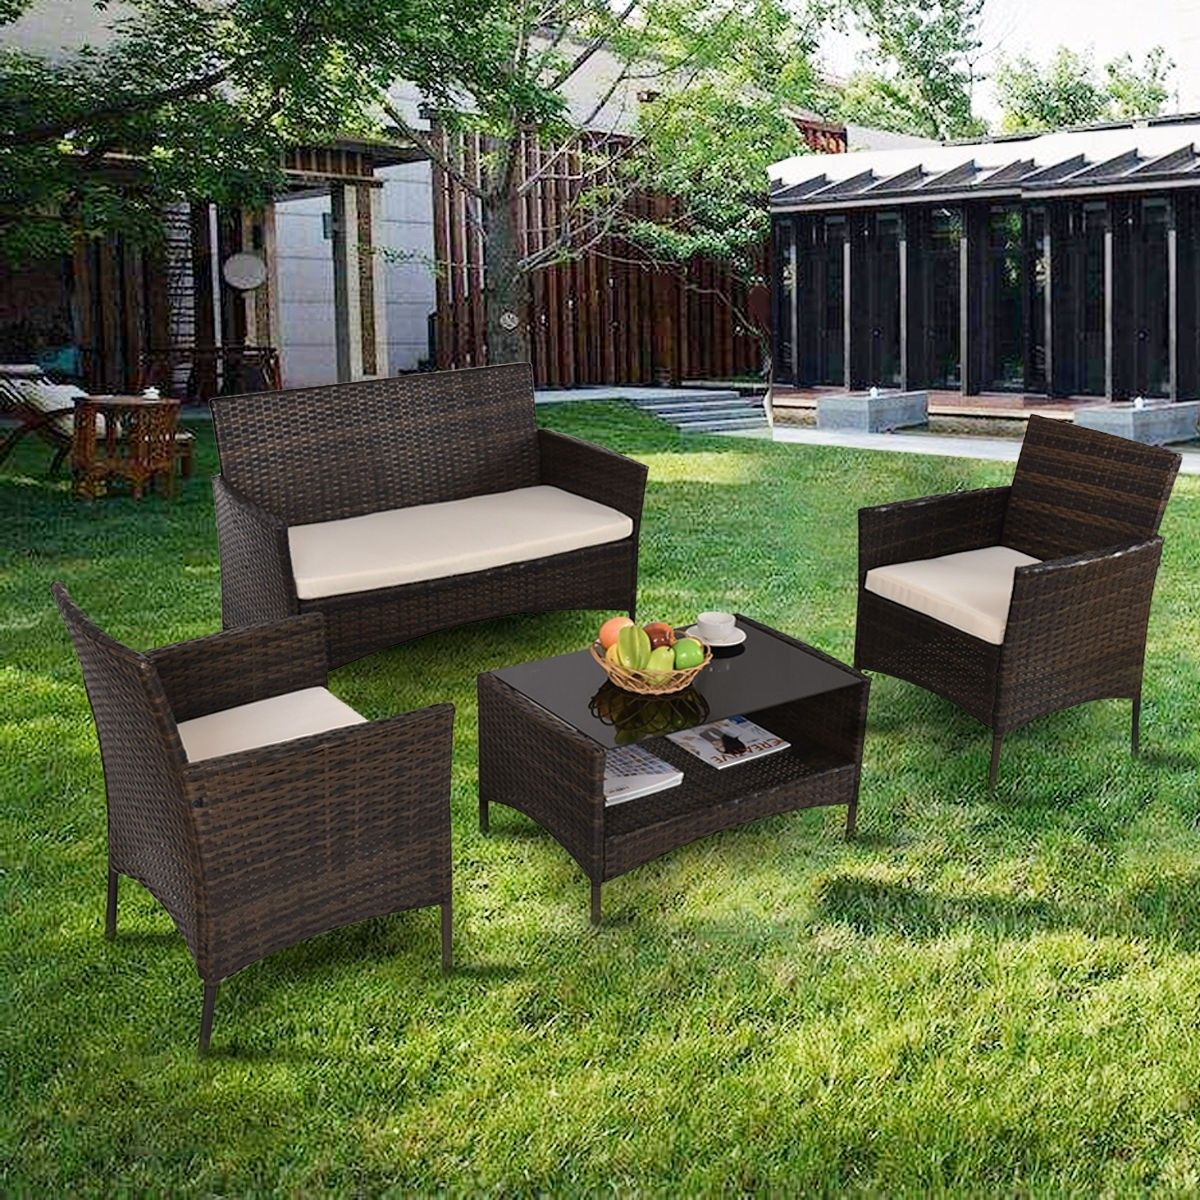 4 Pcs Outdoor Patio Rattan Table W Shelf And Sofa Set In 2020